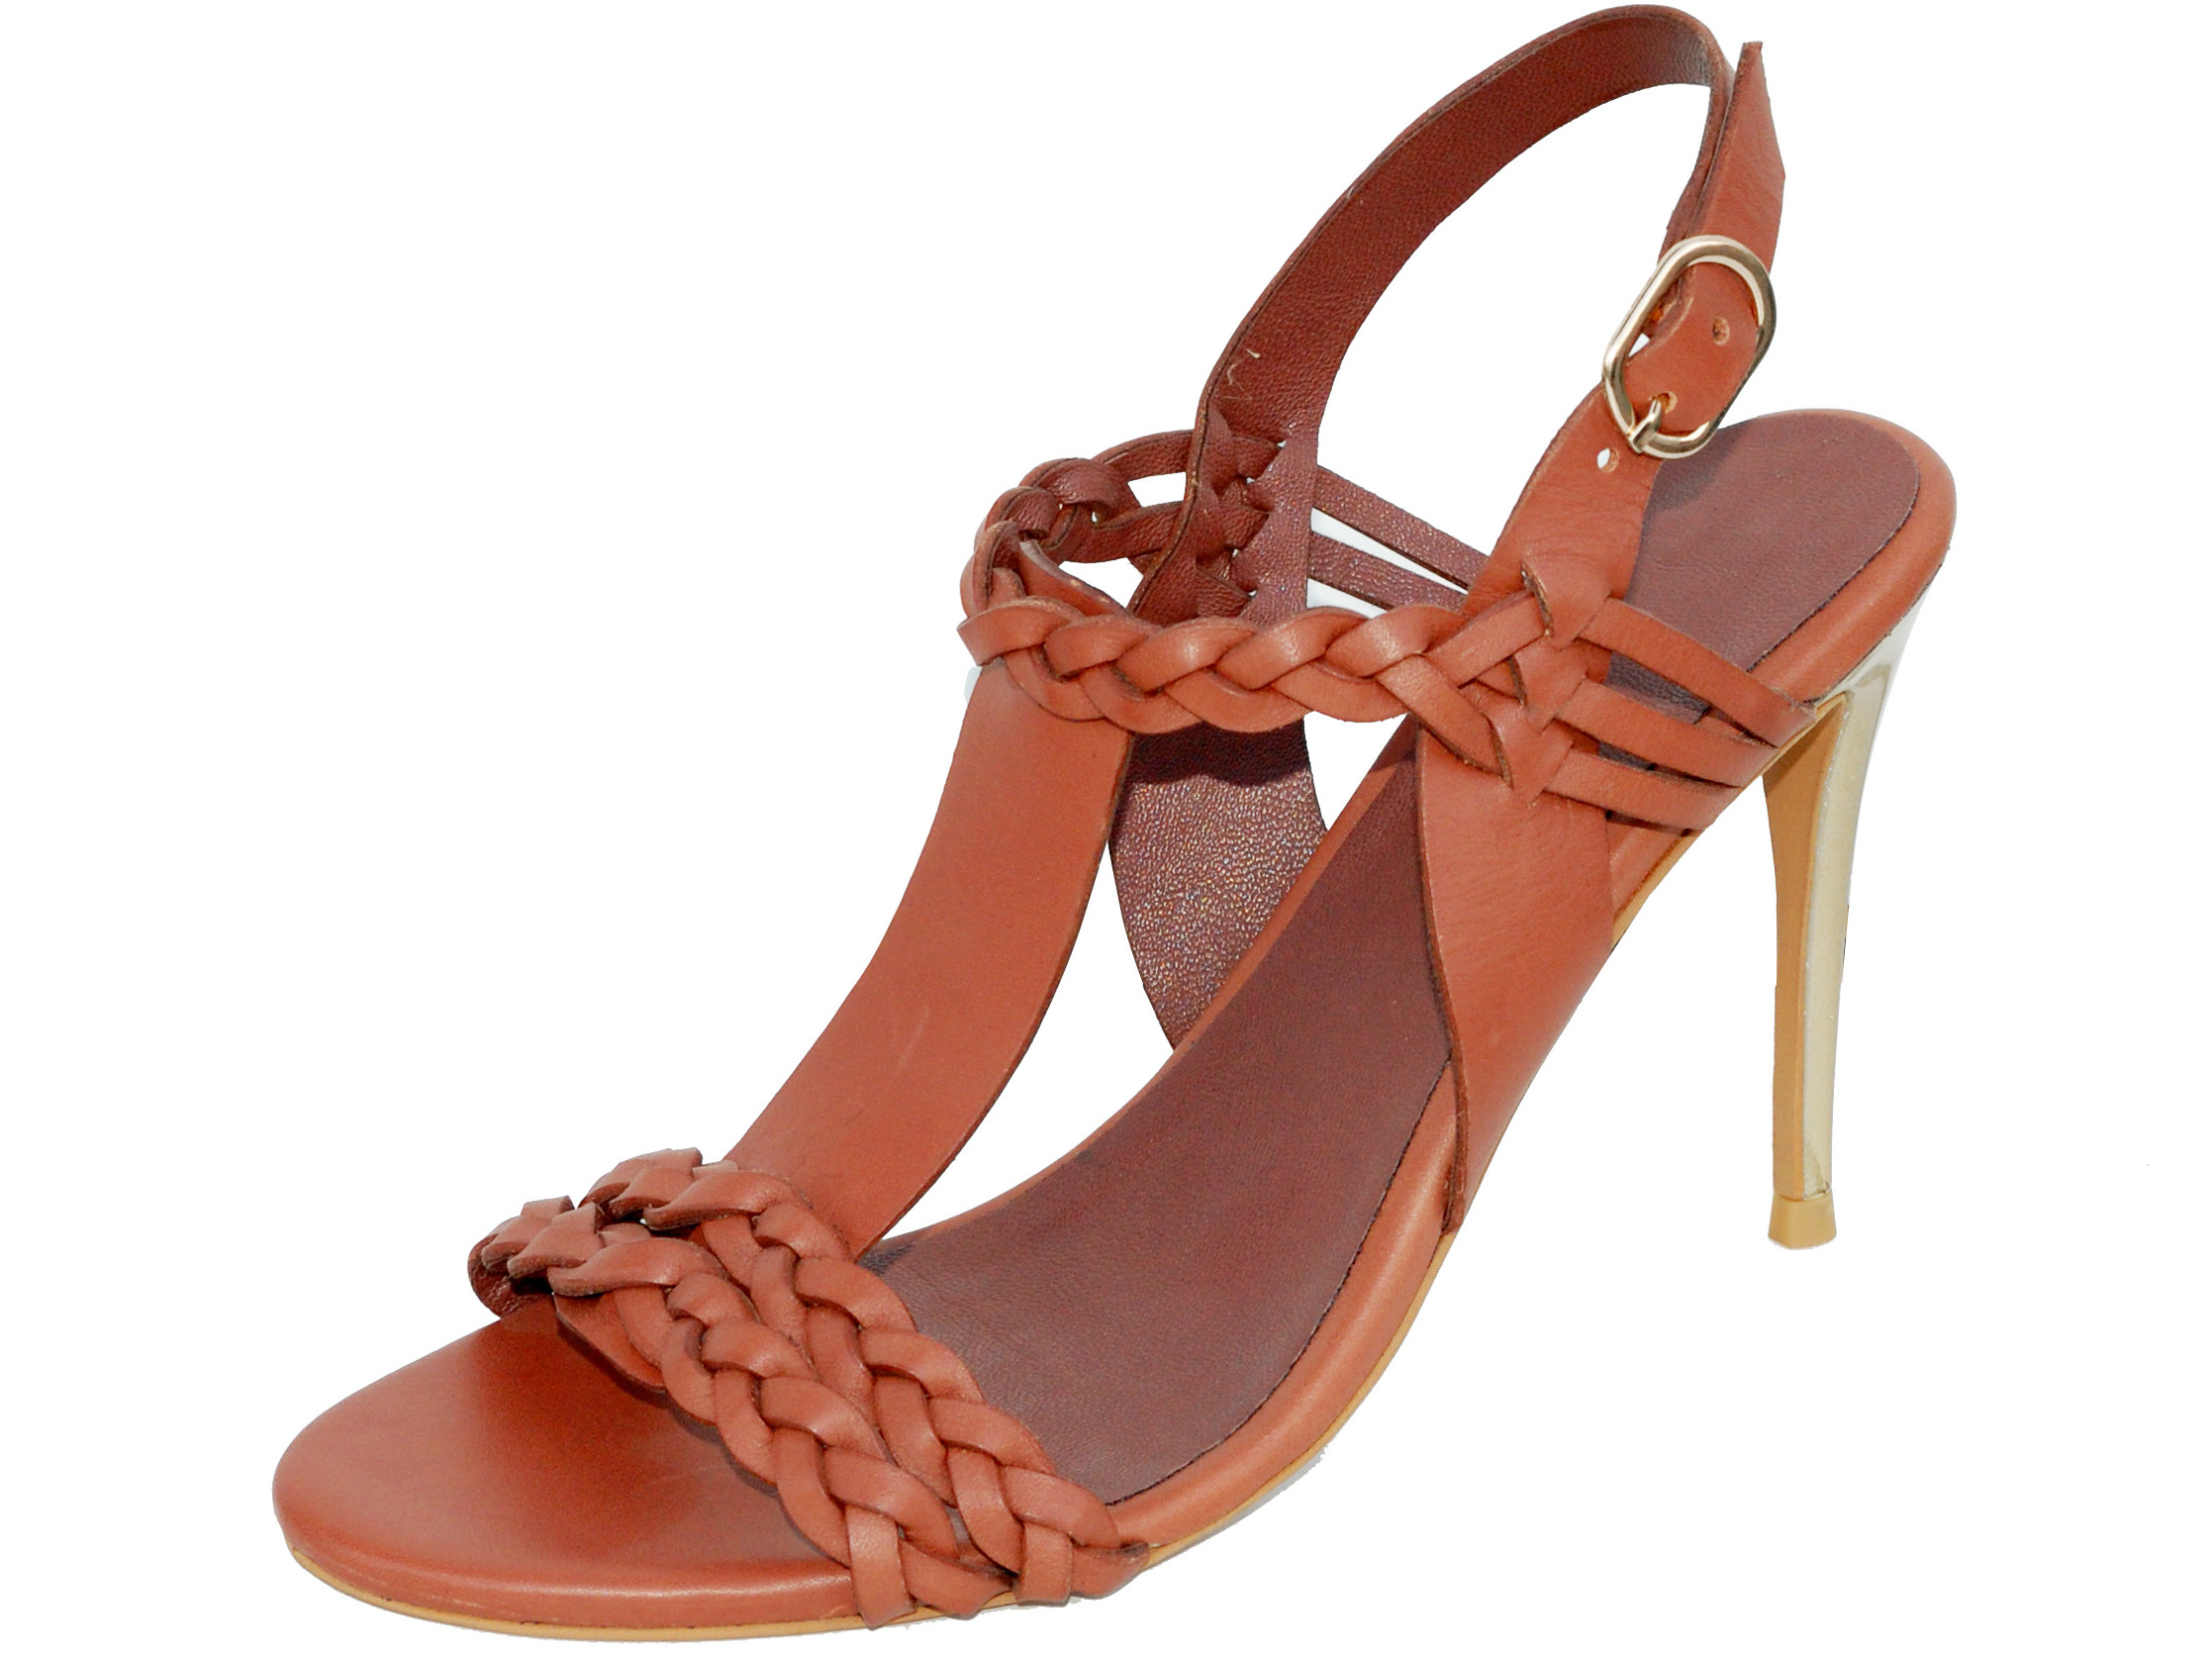 Tan color sandal with weaved detail